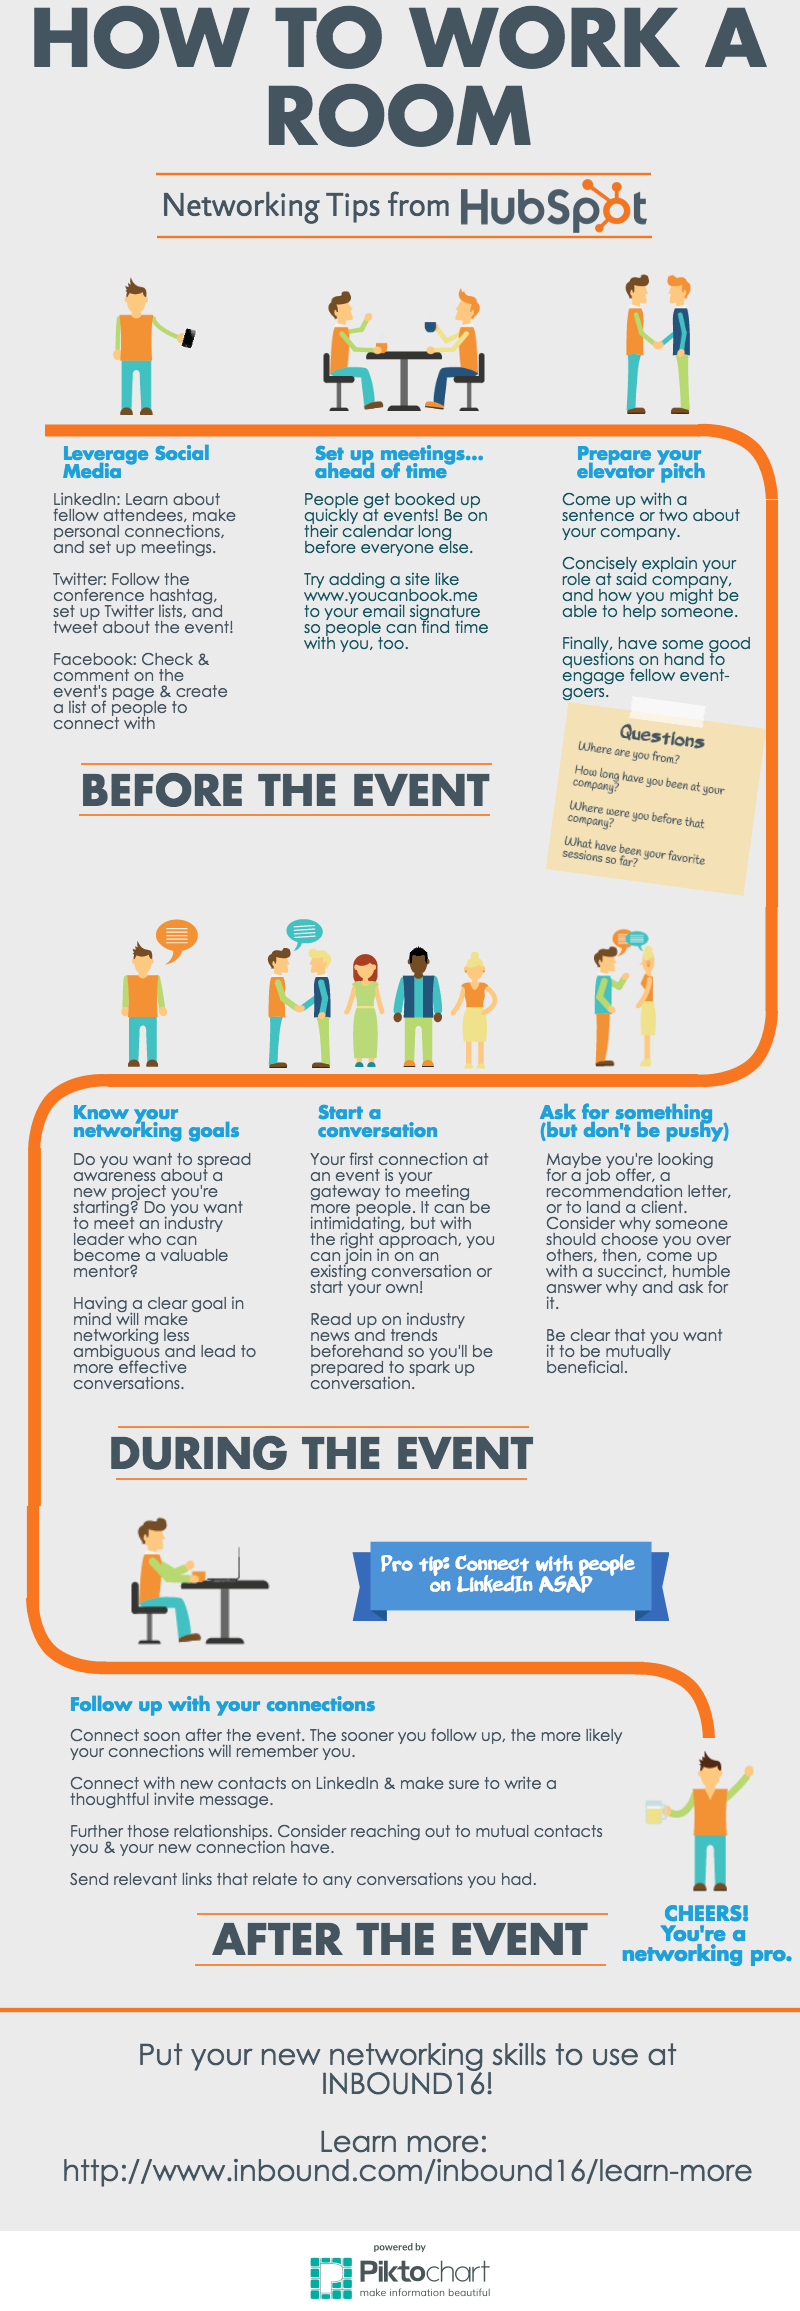 How-to-work-a-room-infographic-inbound16.png